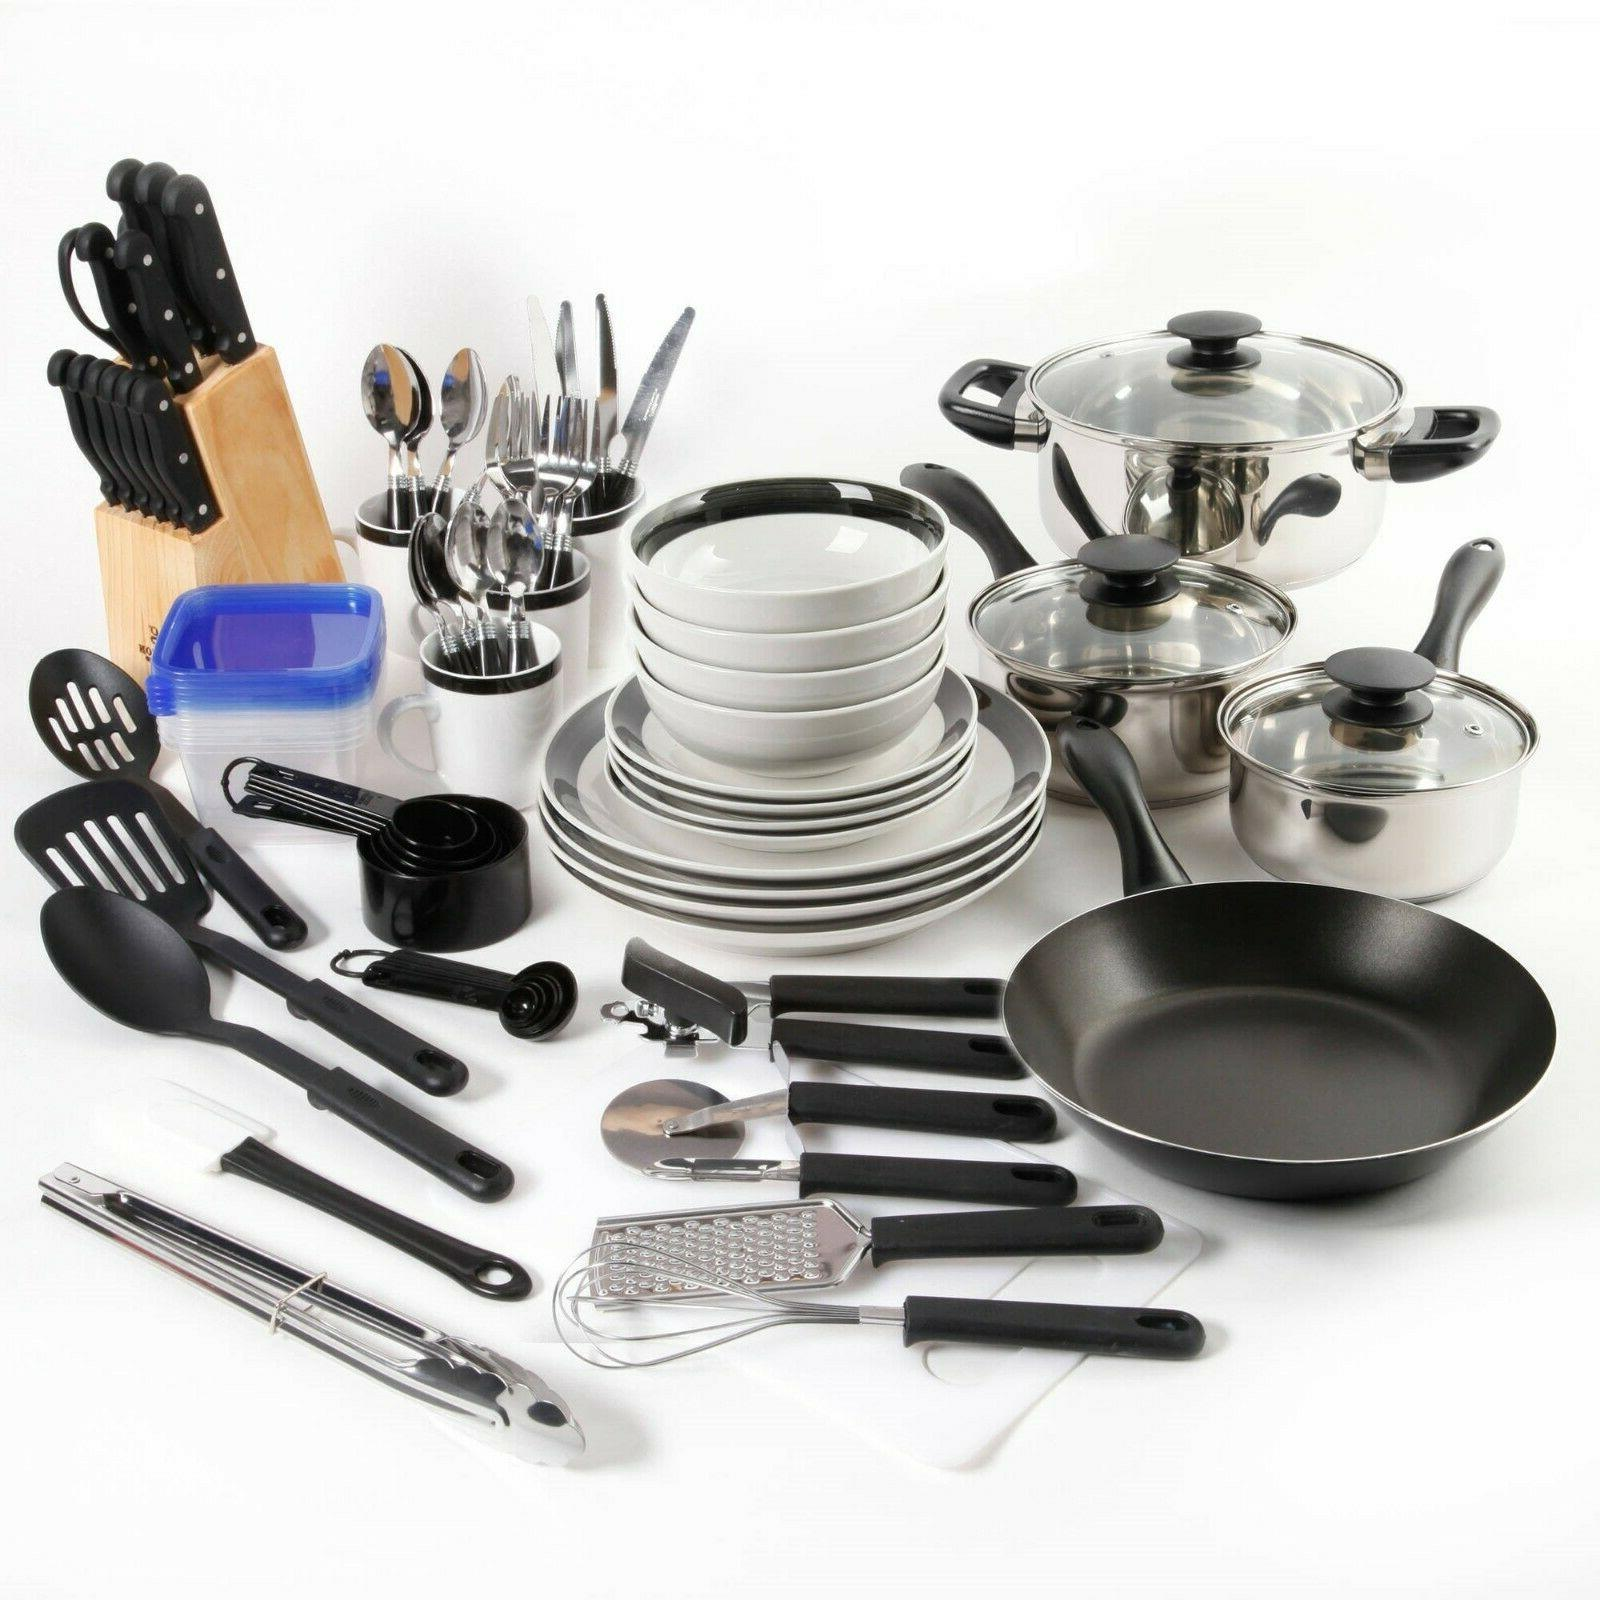 Gibson Home Kitchen In A Box 83-Piece Combo Set, Black